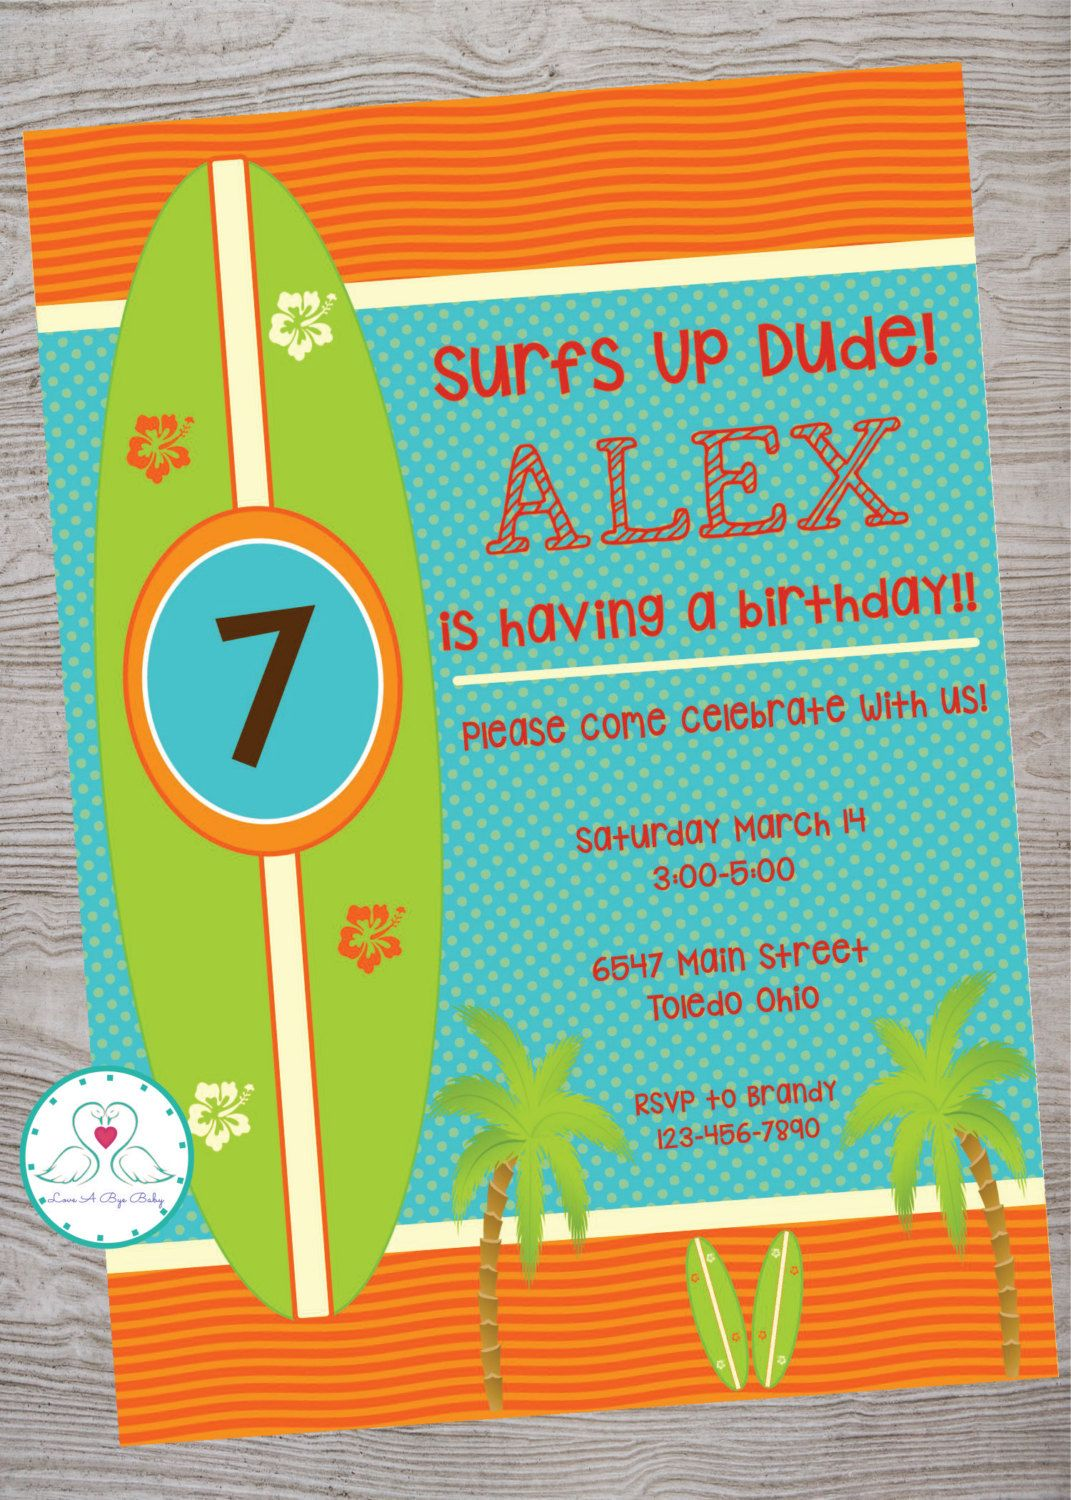 Surfs Up Surfer Party Kid Birthday Invitation Printable Digital Download By LoveAByeBaby On Etsy